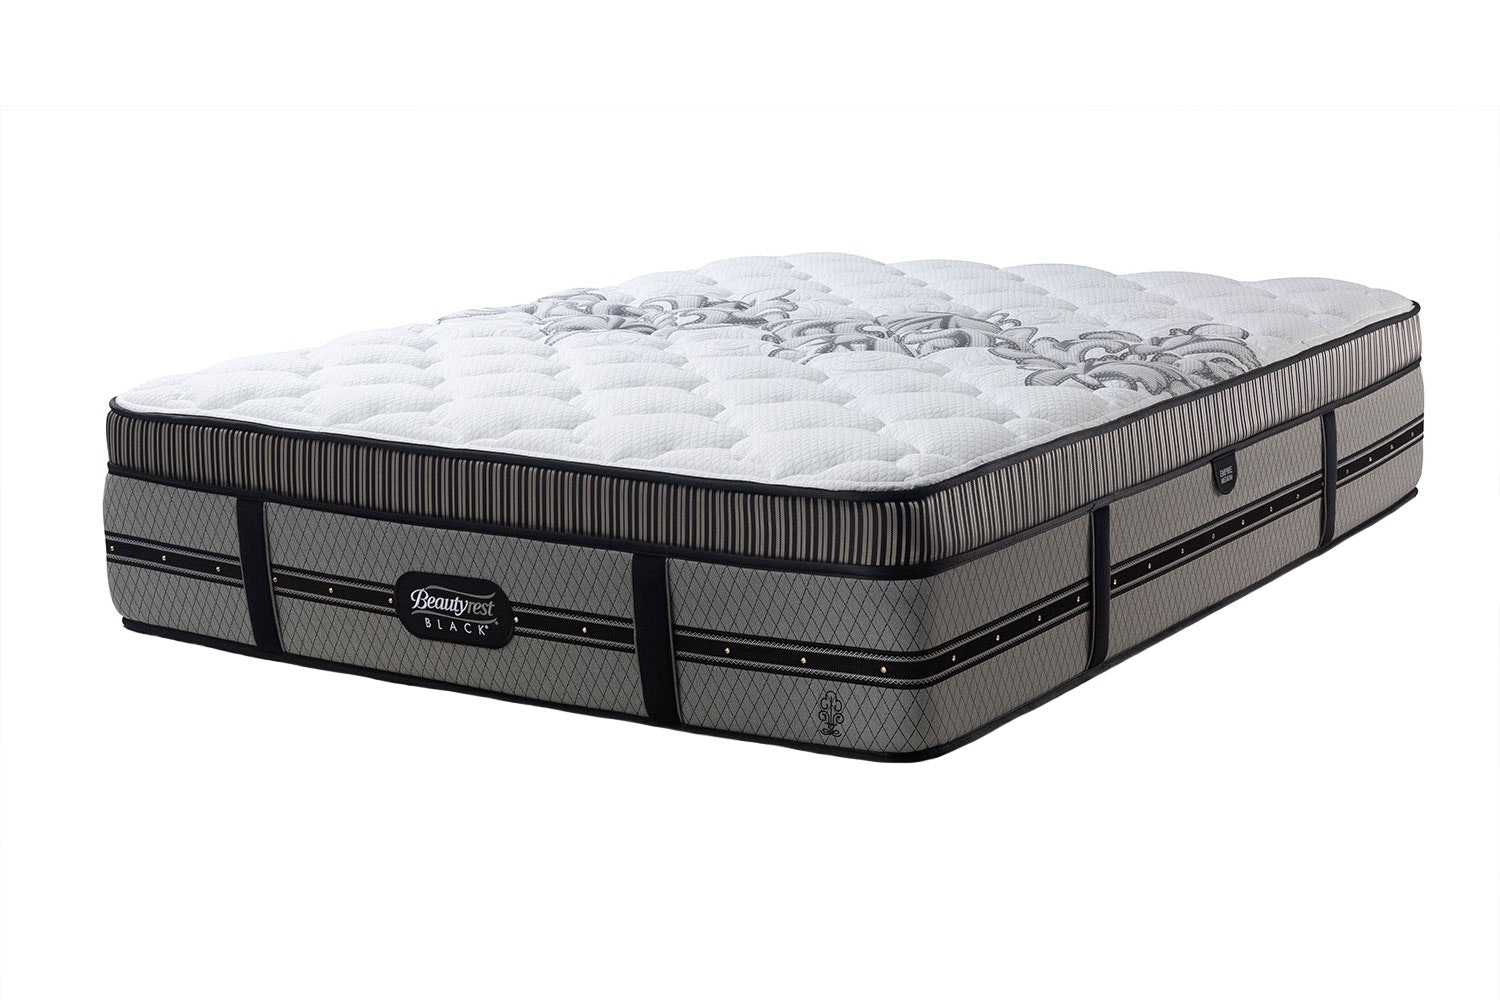 Empire Medium Queen Mattress by Beautyrest Black